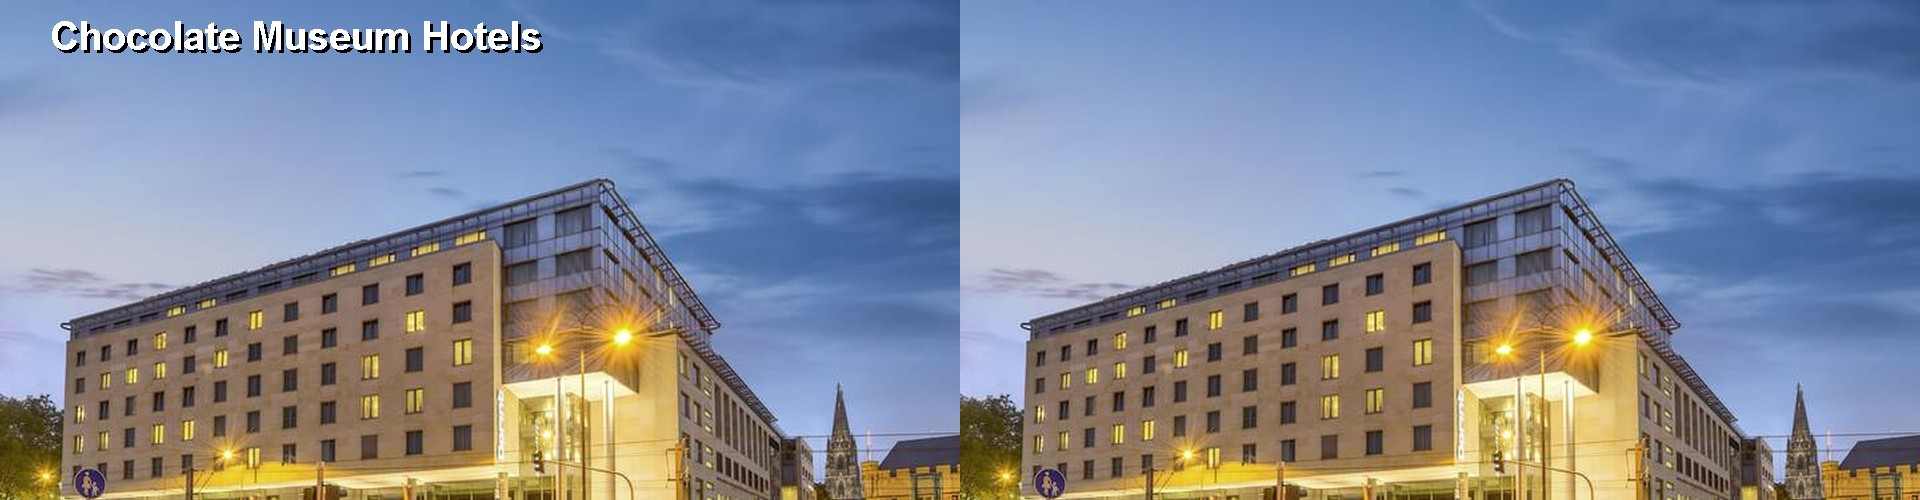 5 Best Hotels near Chocolate Museum